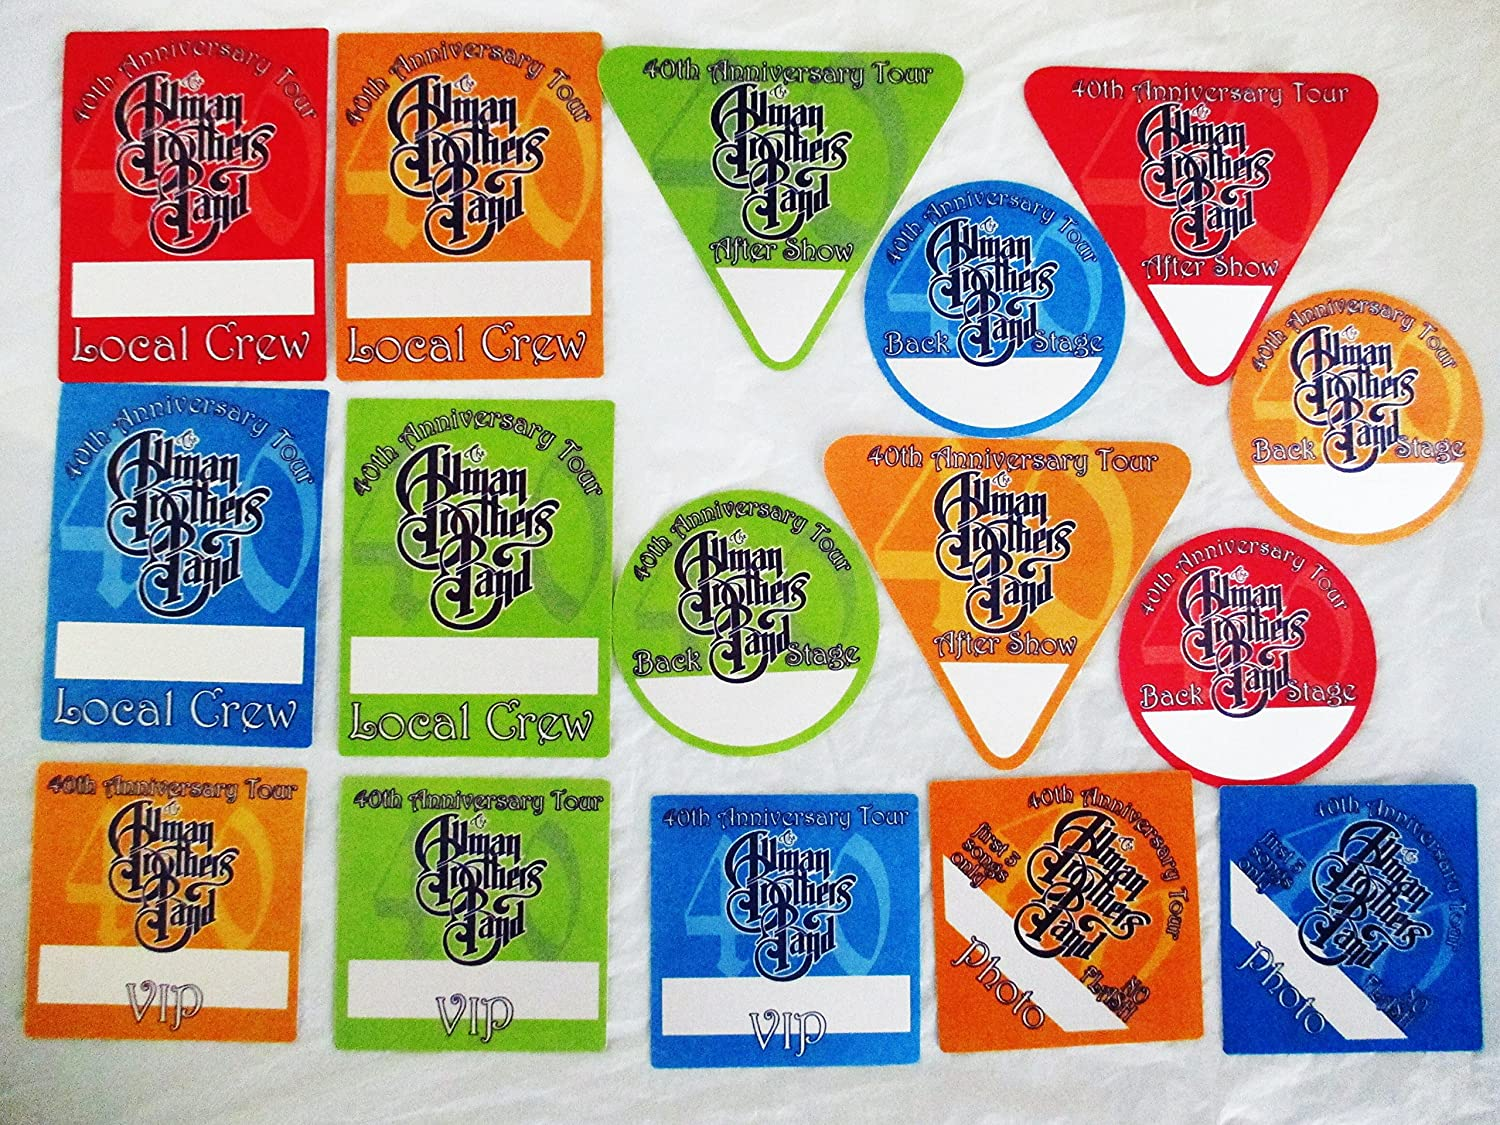 16 2009 Allman Brothers Band Backstage Passes 40th Anniversary Tour